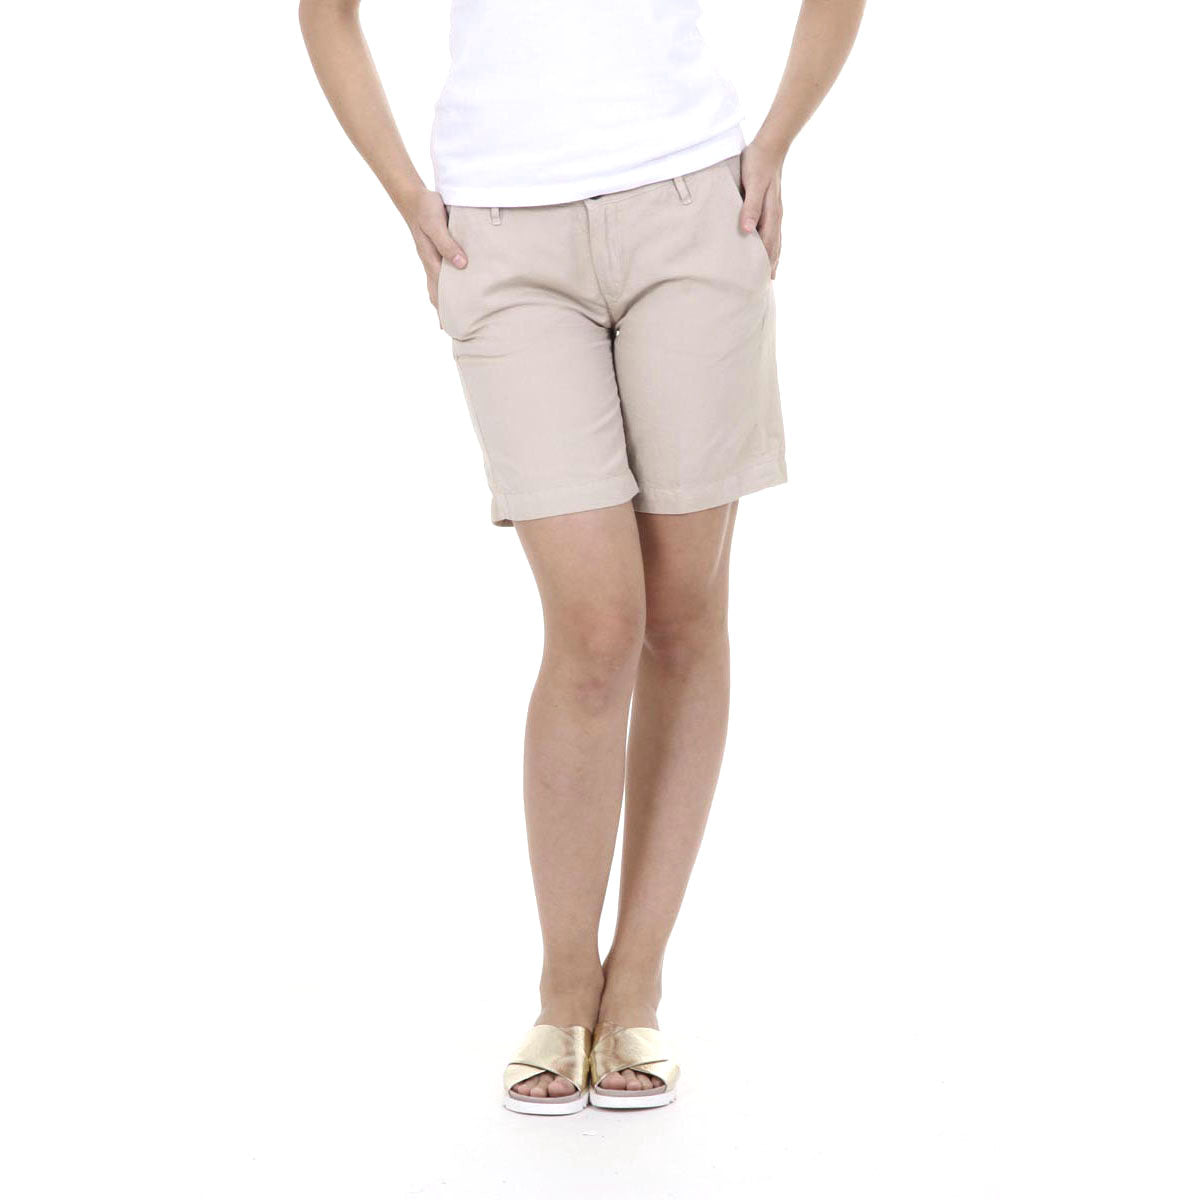 Fred Perry Womens Shorts 31502641 7071